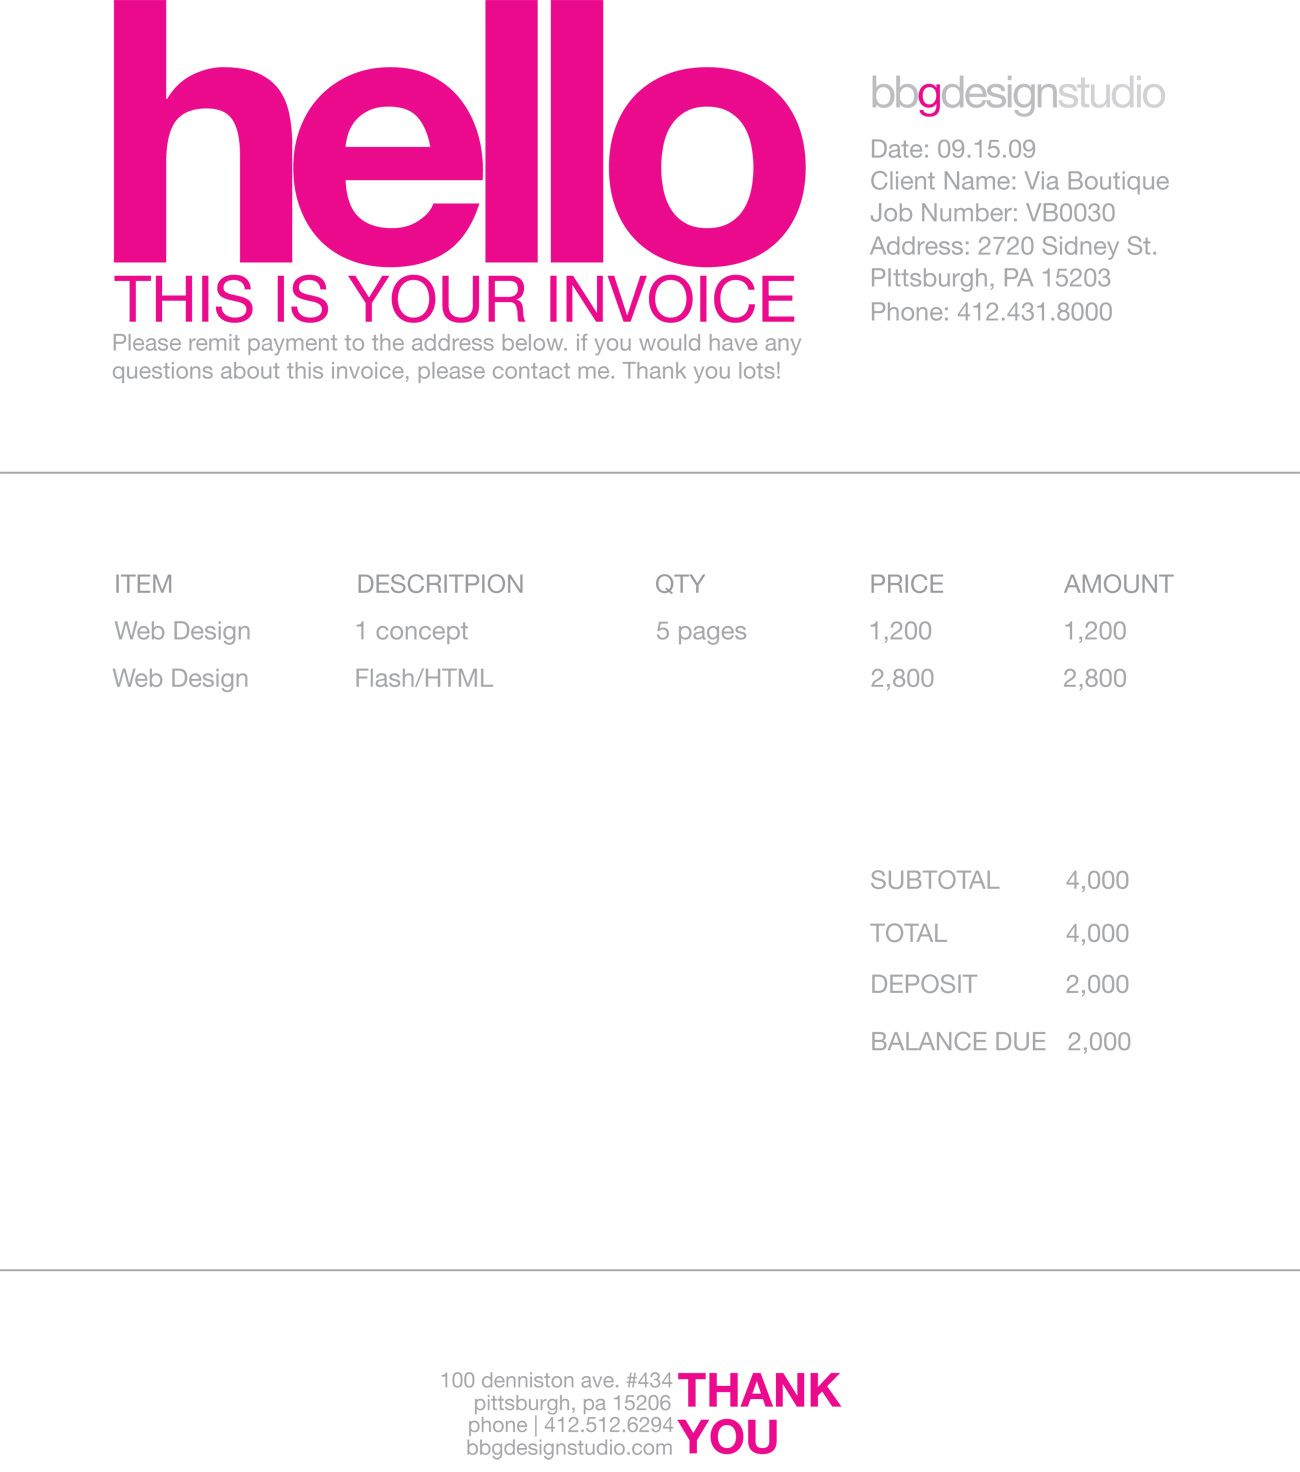 Coolmathgamesus  Ravishing  Images About Invoice Design On Pinterest With Handsome Invoice Date Besides Invoice Template Doc Furthermore My Invoices And Estimates Deluxe With Appealing Invoice Price Vs Msrp Also Invoice Machine In Addition How To Fill Out An Invoice And Vehicle Invoice Price As Well As Immigrant Visa Invoice Payment Center Additionally How Much Does Paypal Charge For Invoice From Pinterestcom With Coolmathgamesus  Handsome  Images About Invoice Design On Pinterest With Appealing Invoice Date Besides Invoice Template Doc Furthermore My Invoices And Estimates Deluxe And Ravishing Invoice Price Vs Msrp Also Invoice Machine In Addition How To Fill Out An Invoice From Pinterestcom